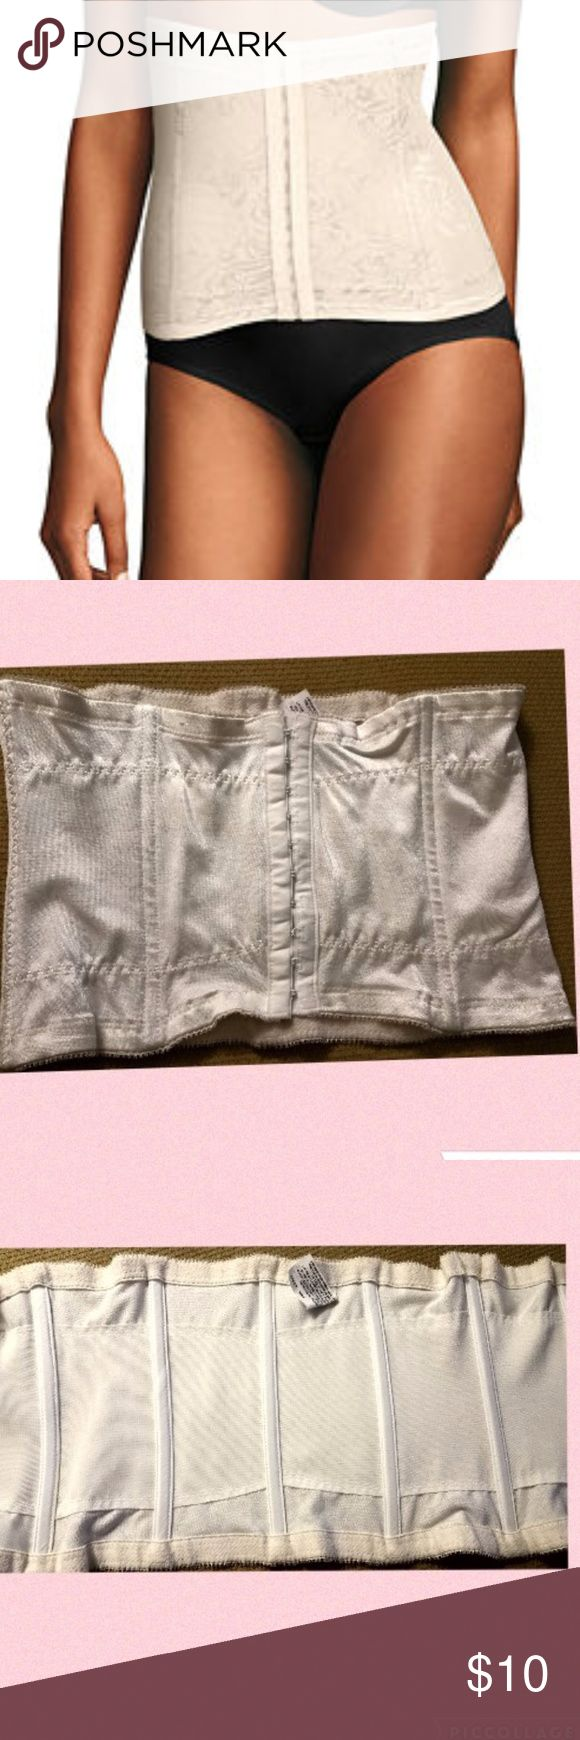 Vintage Topless Corset Waist Cincher Girdle Boned Vintage Adonna Topless Corset Waist Cincher Girdle Boned Shapewear  Large Nylon/Spandex Good condition Adonna Intimates & Sleepwear Shapewear